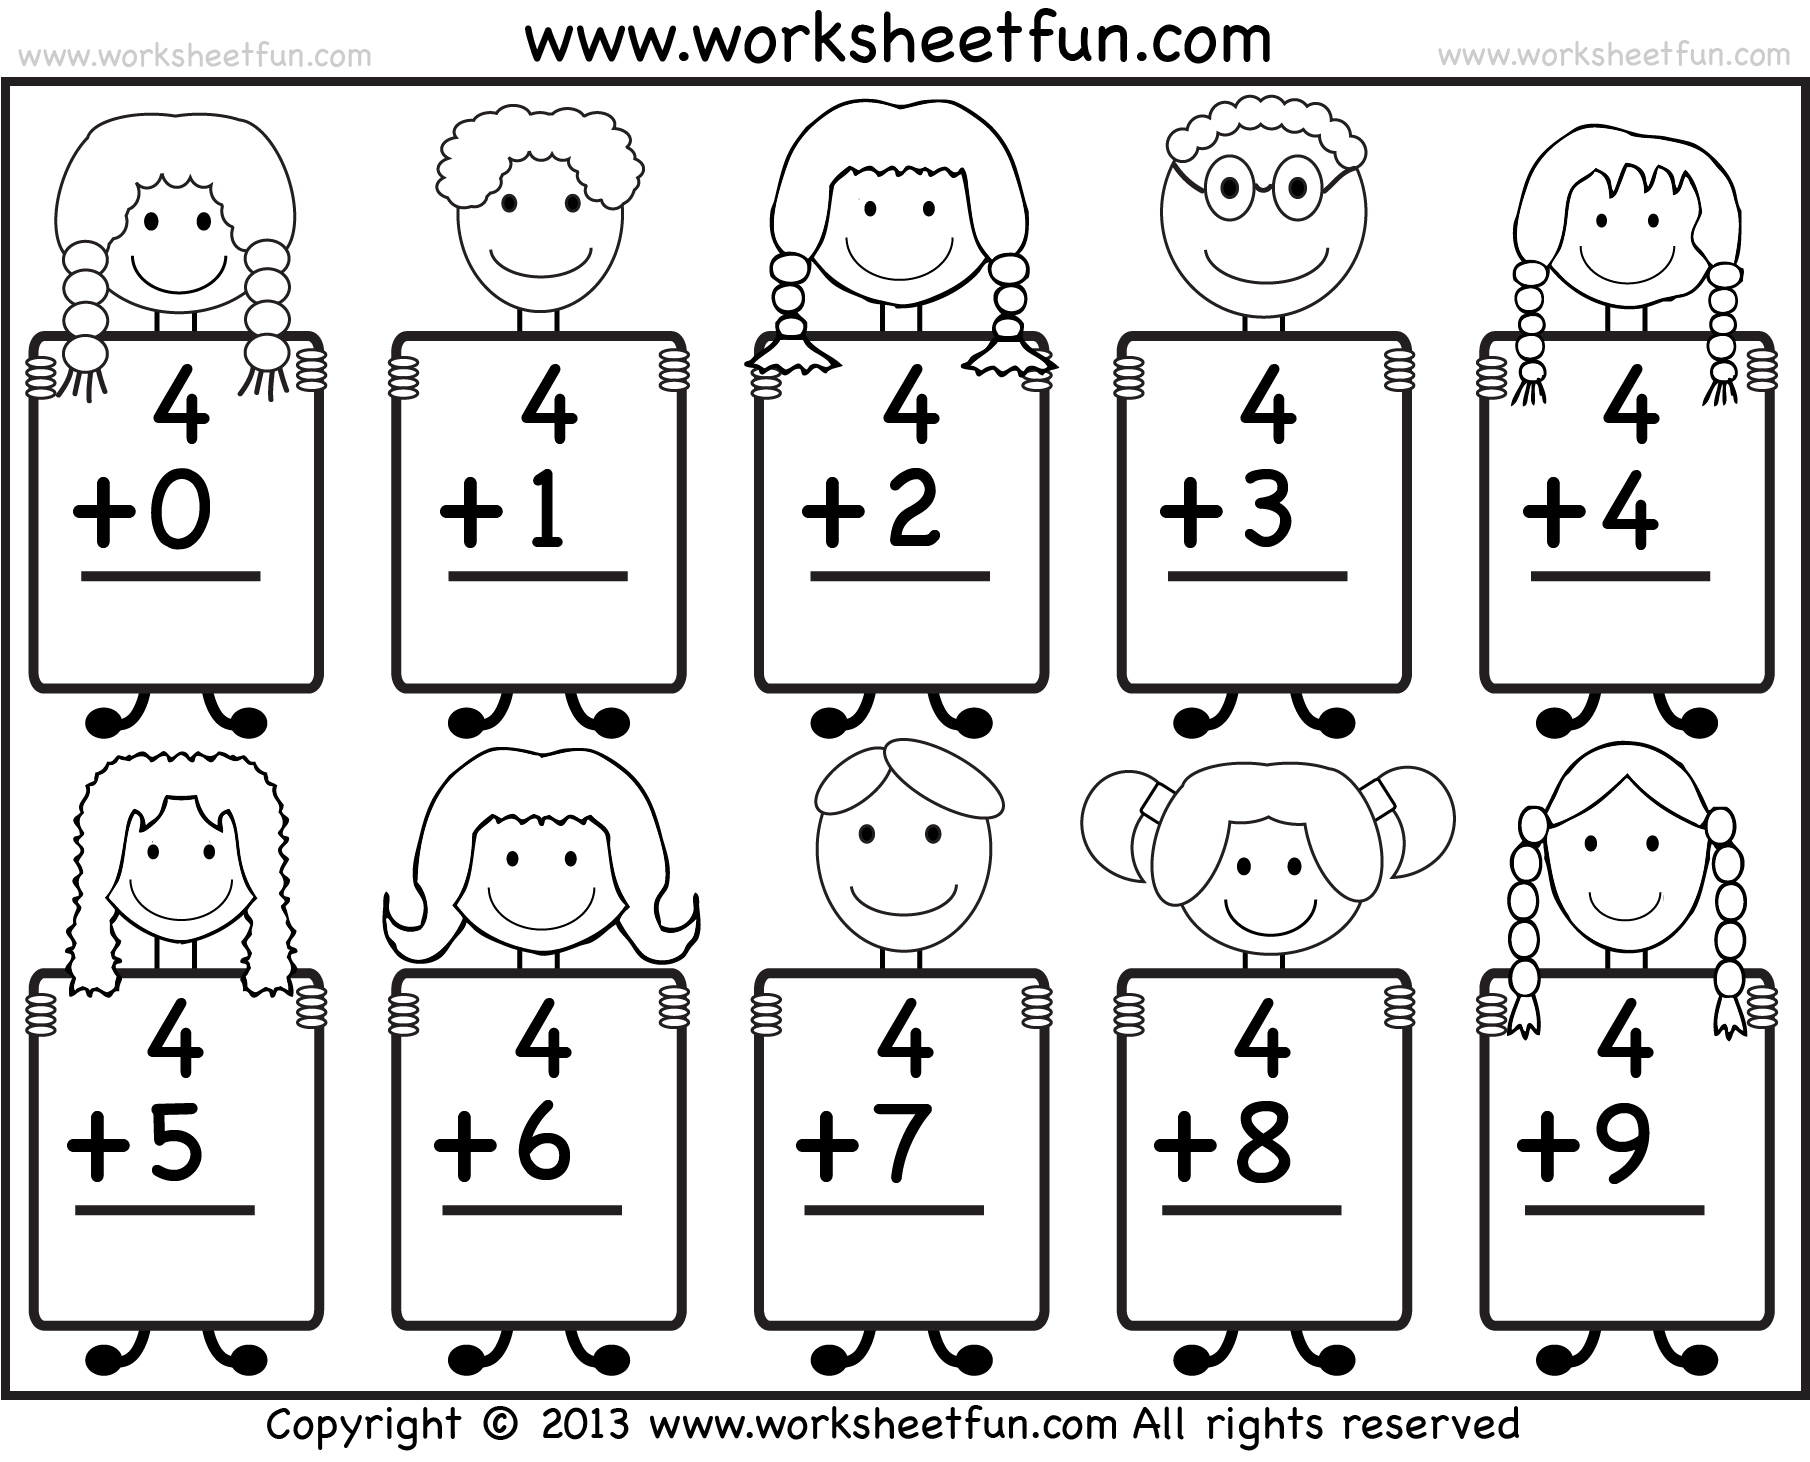 math worksheet : addition math worksheets for kindergarten  worksheets on study  : Free Addition Math Worksheets